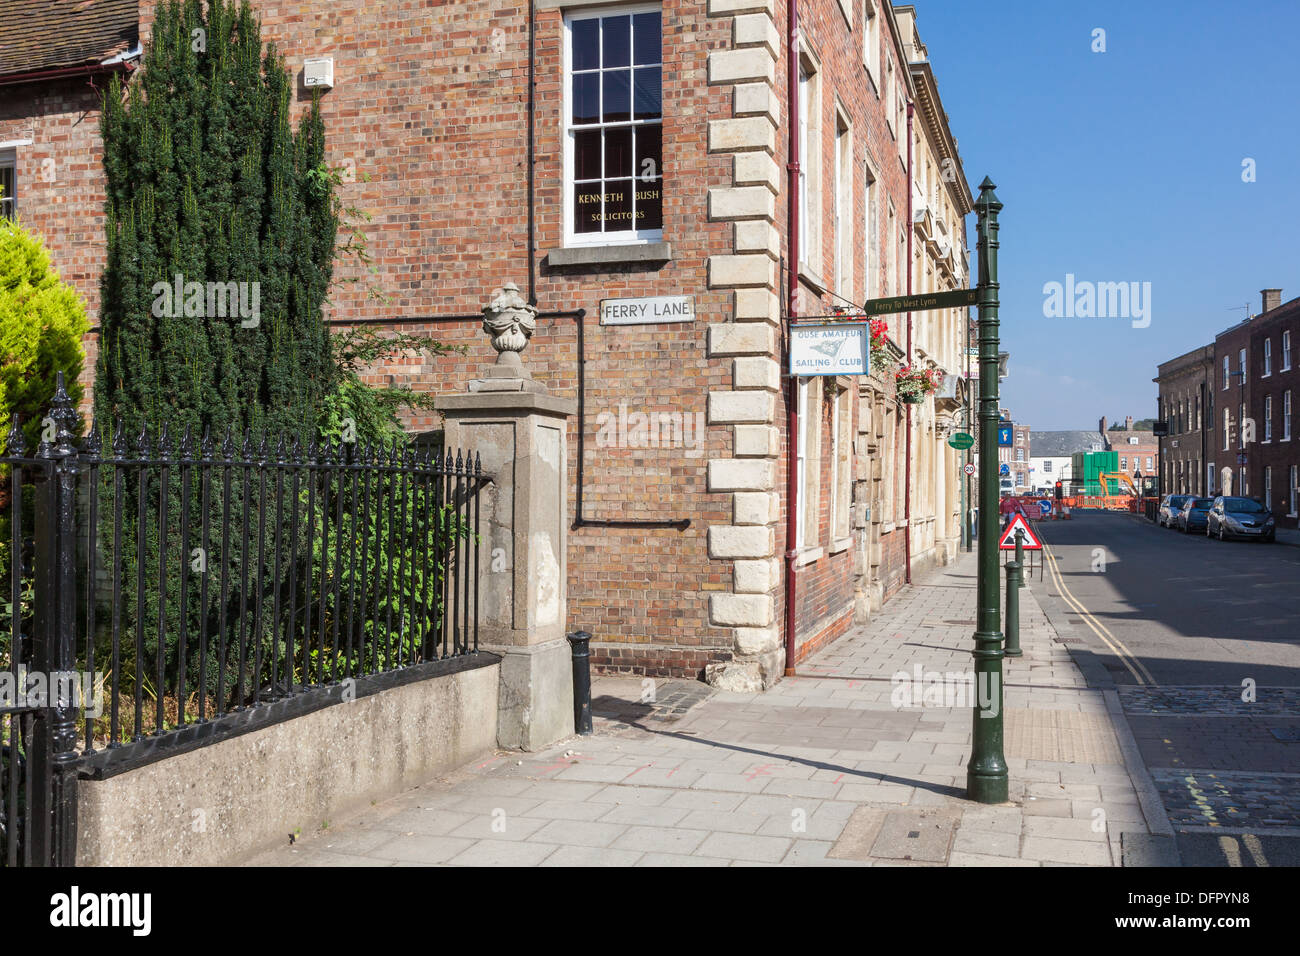 The entry to Ferry Lane off King St, King's Lynn. The Lynn ferry crosses the River Great Ouse from Here, Norfolk Stock Photo